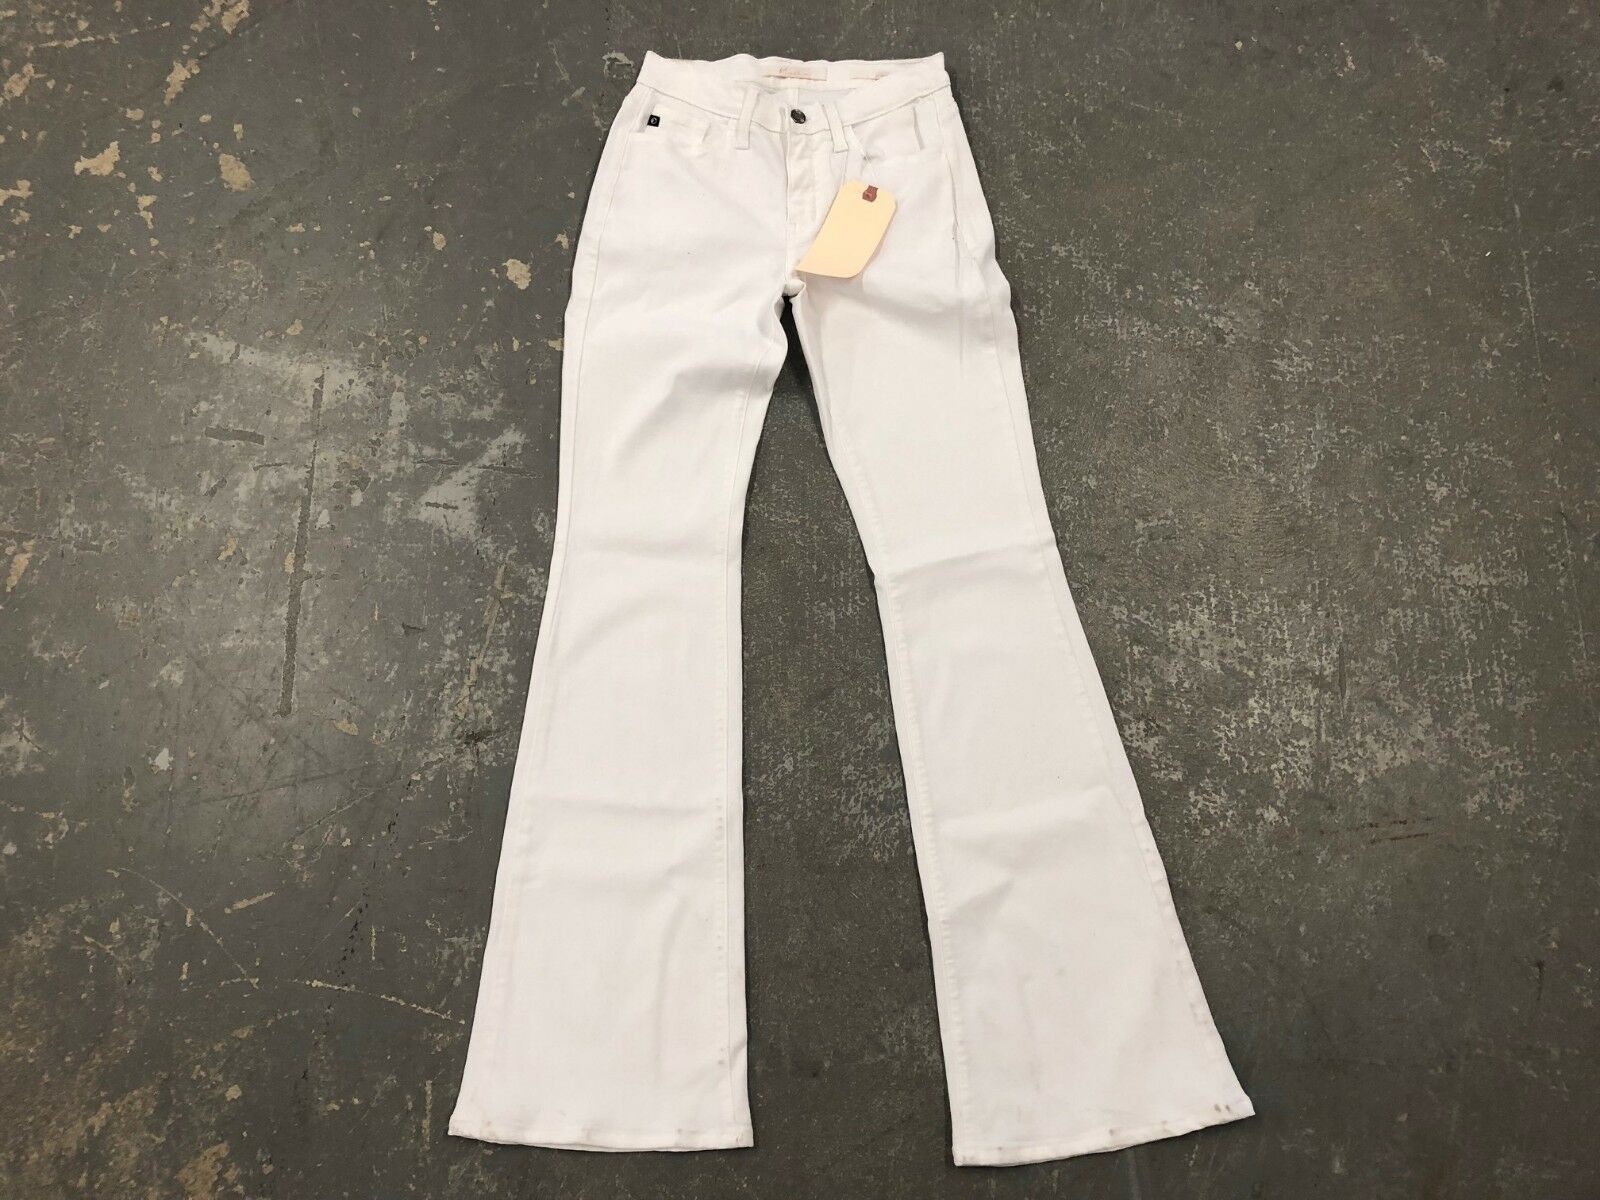 NWT LADIES KANCAN JEANS WHITE STRETCH CARY KENTON BOOT CUT SIZE 3   25 99  USA